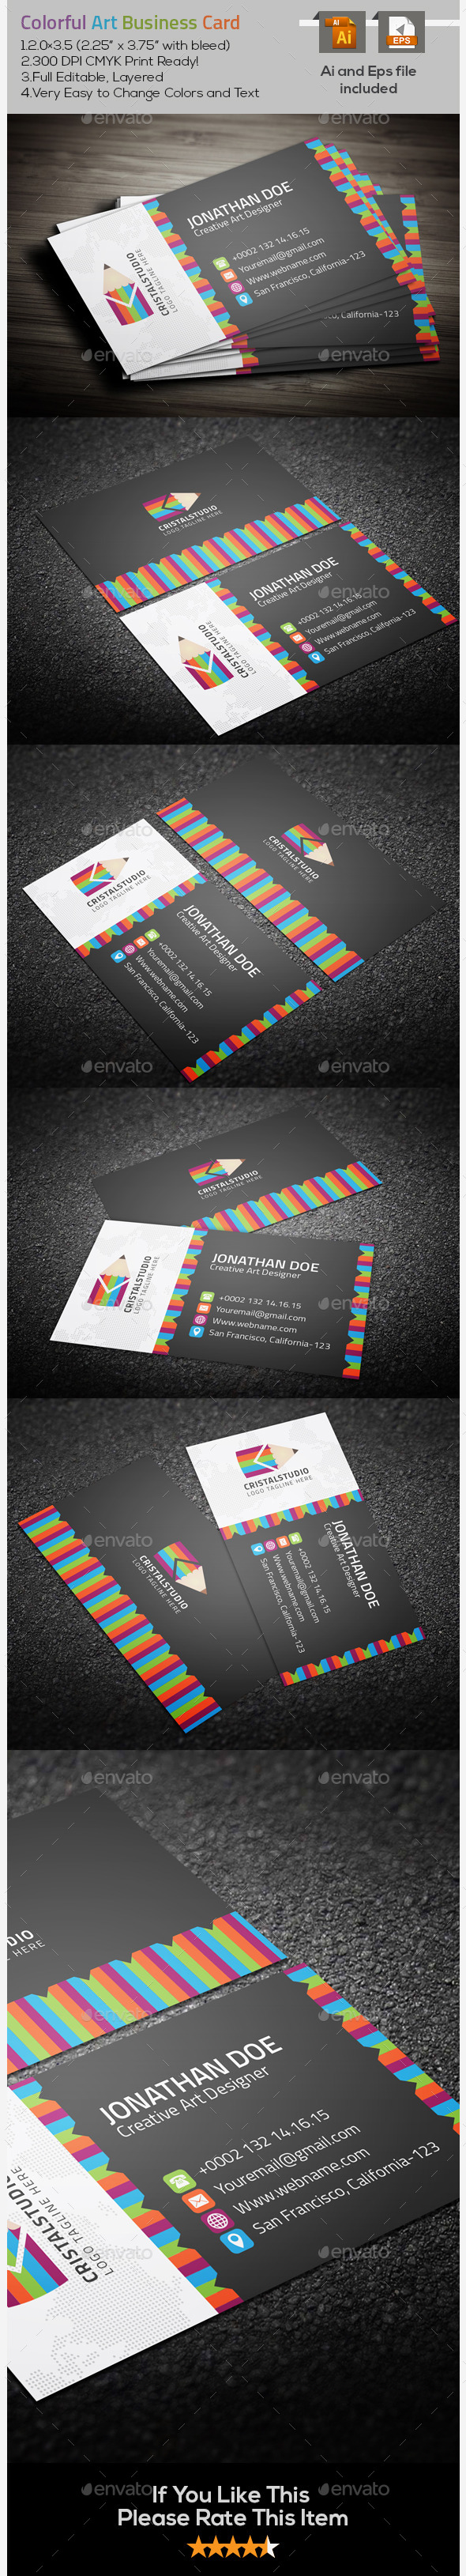 GraphicRiver Colorful Art Business Card 9630482